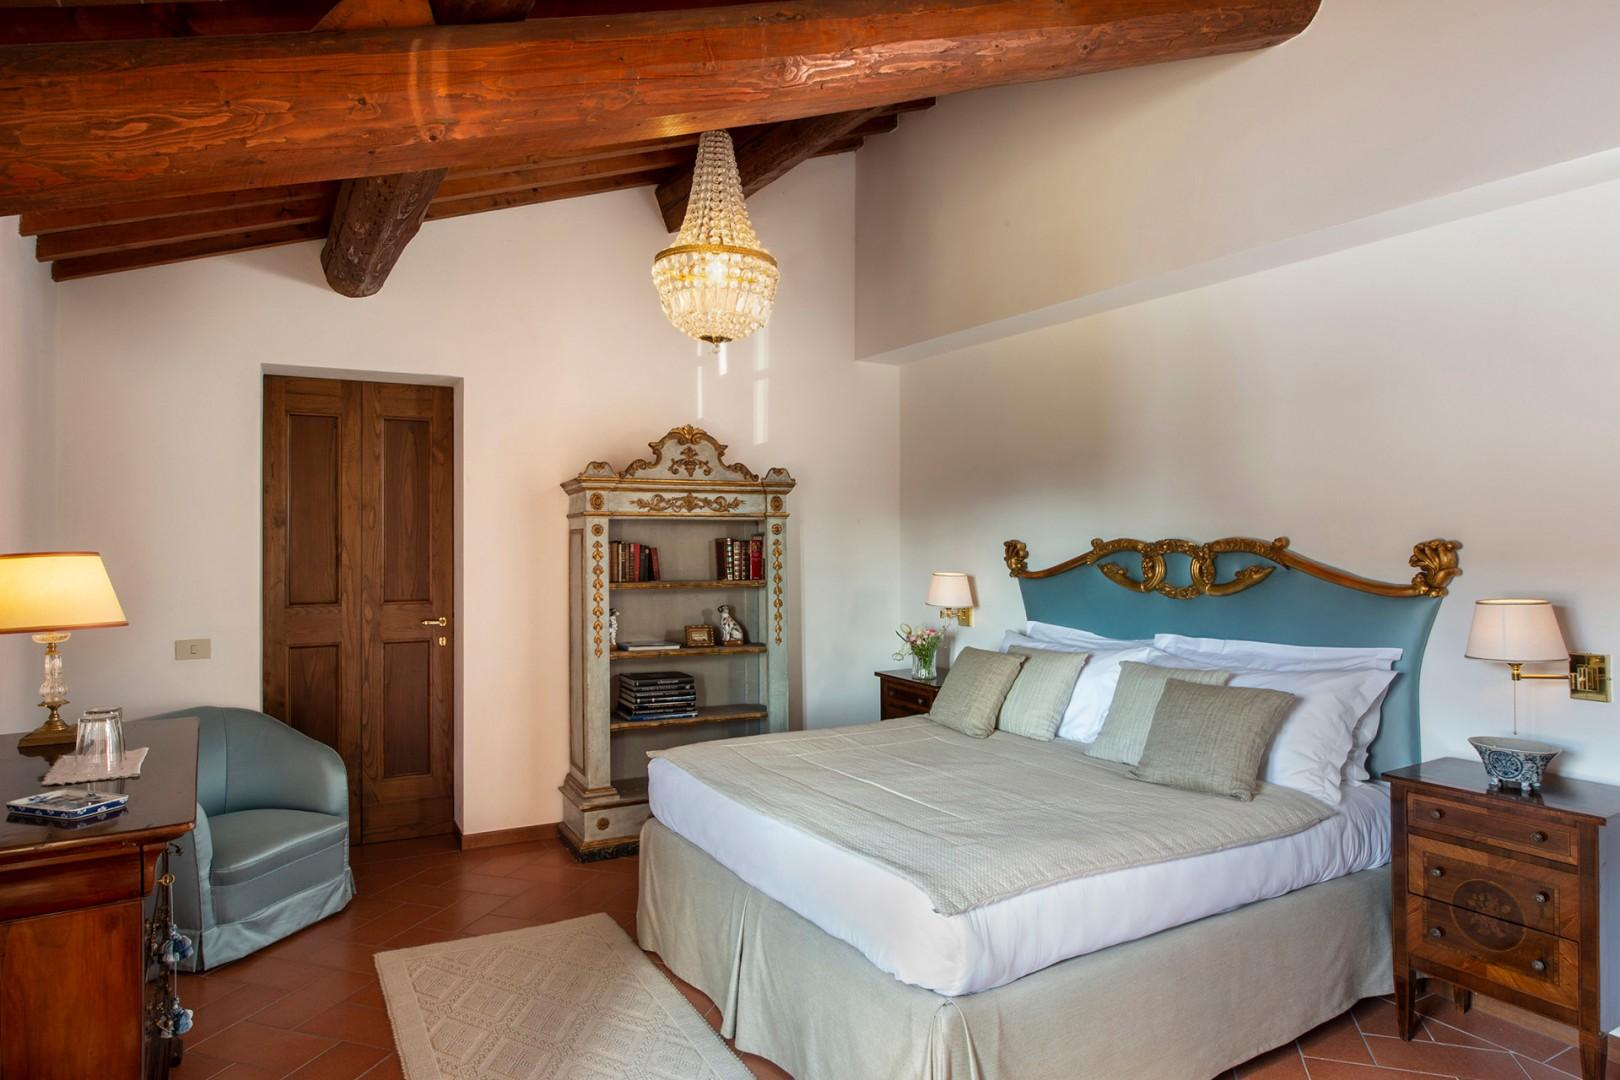 Each of the 5 bedrooms has its own bathroom as well as stunning views of the villa grounds.